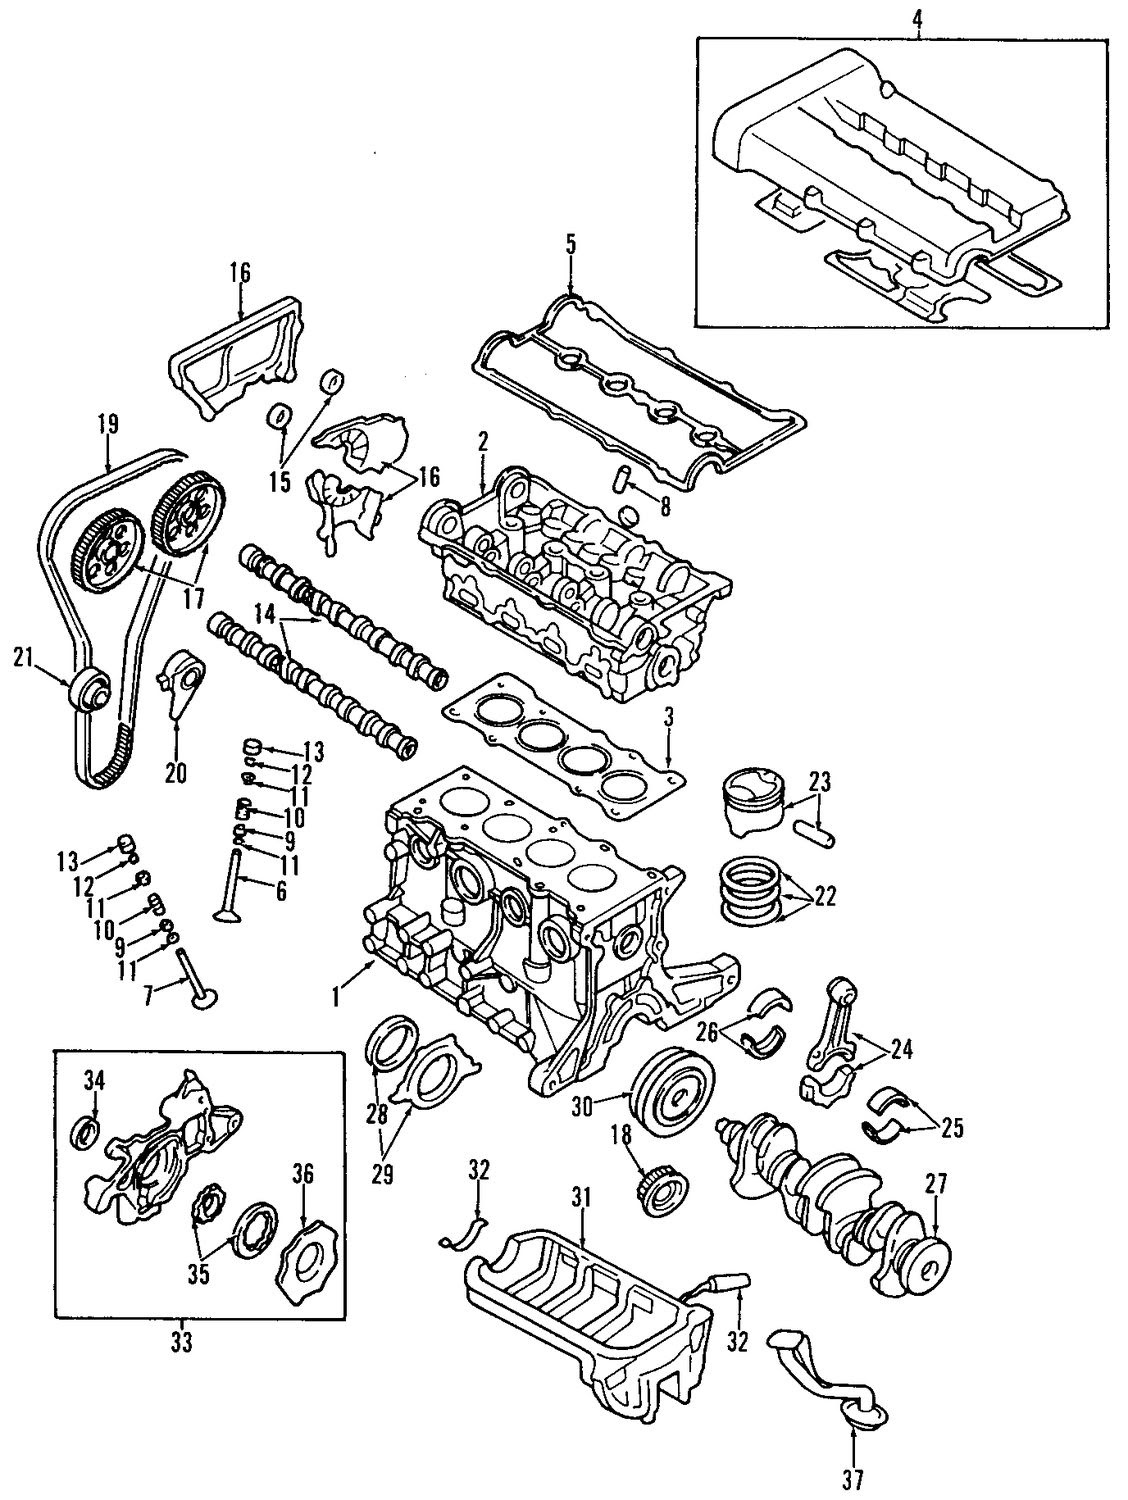 wiring diagram pdf  2003 kia spectra engine diagram